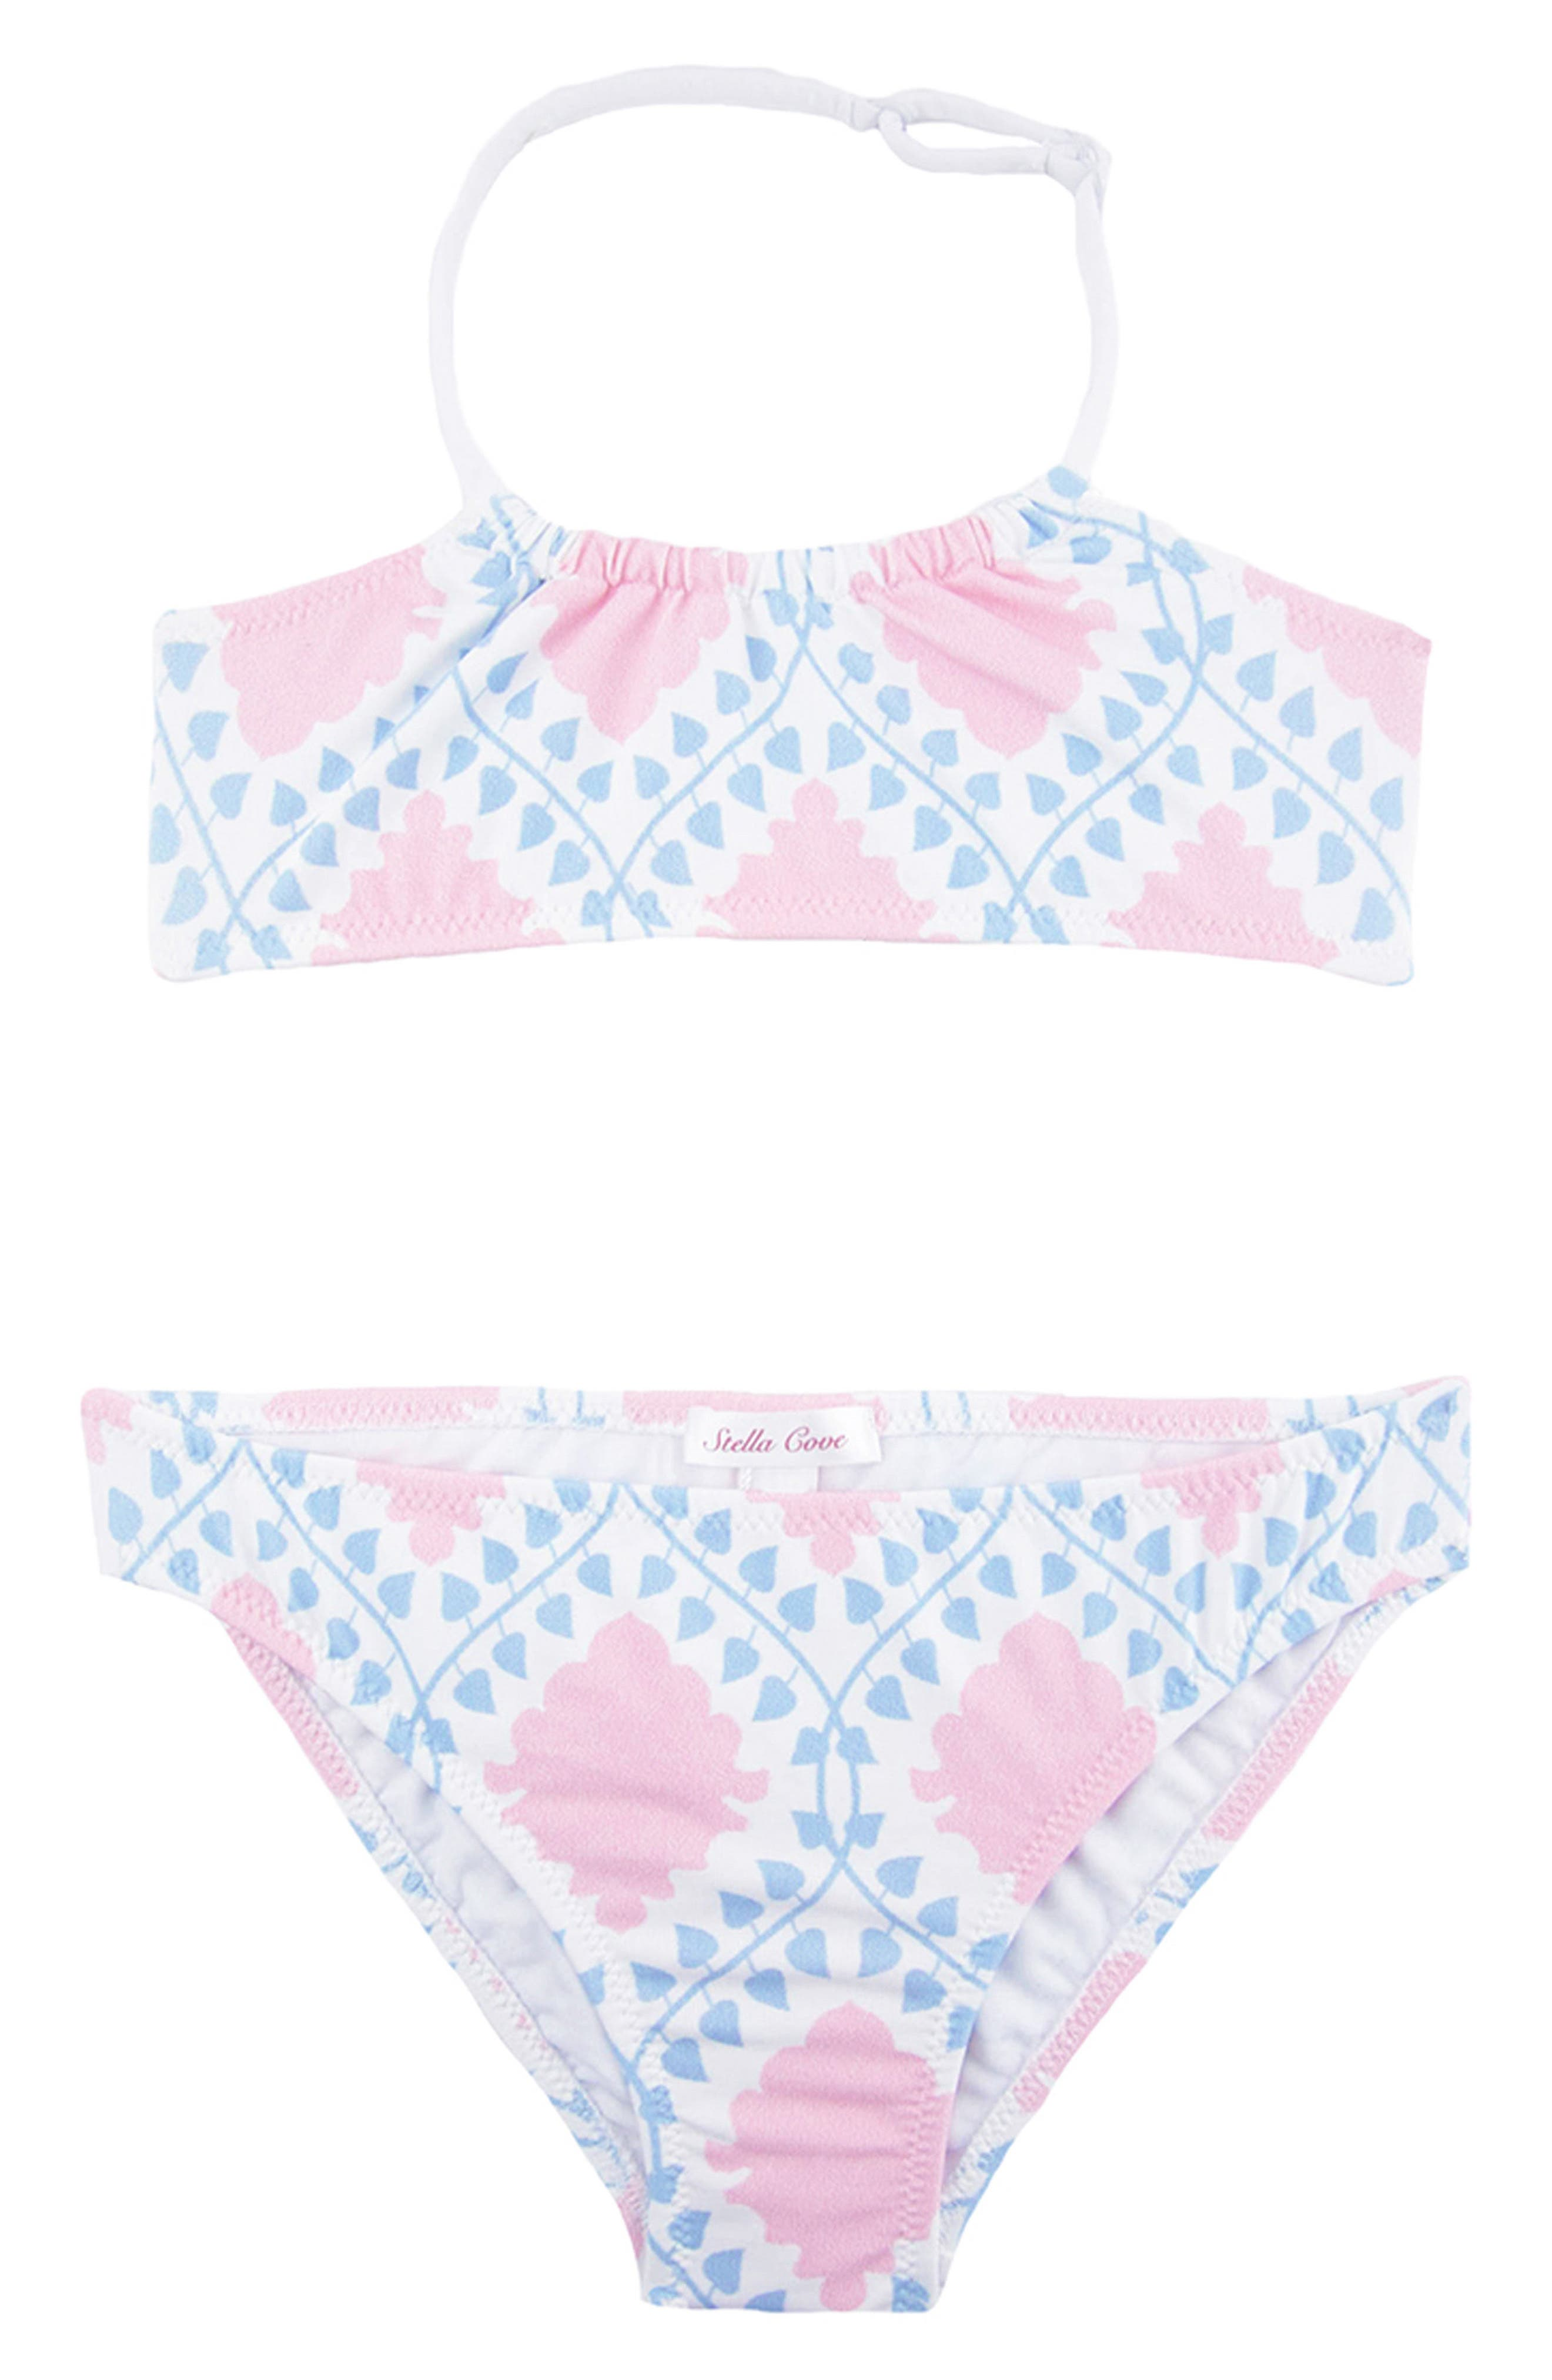 Main Image - Stella Cove Two-Piece Swimsuit (Toddler Girls & Little Girls)